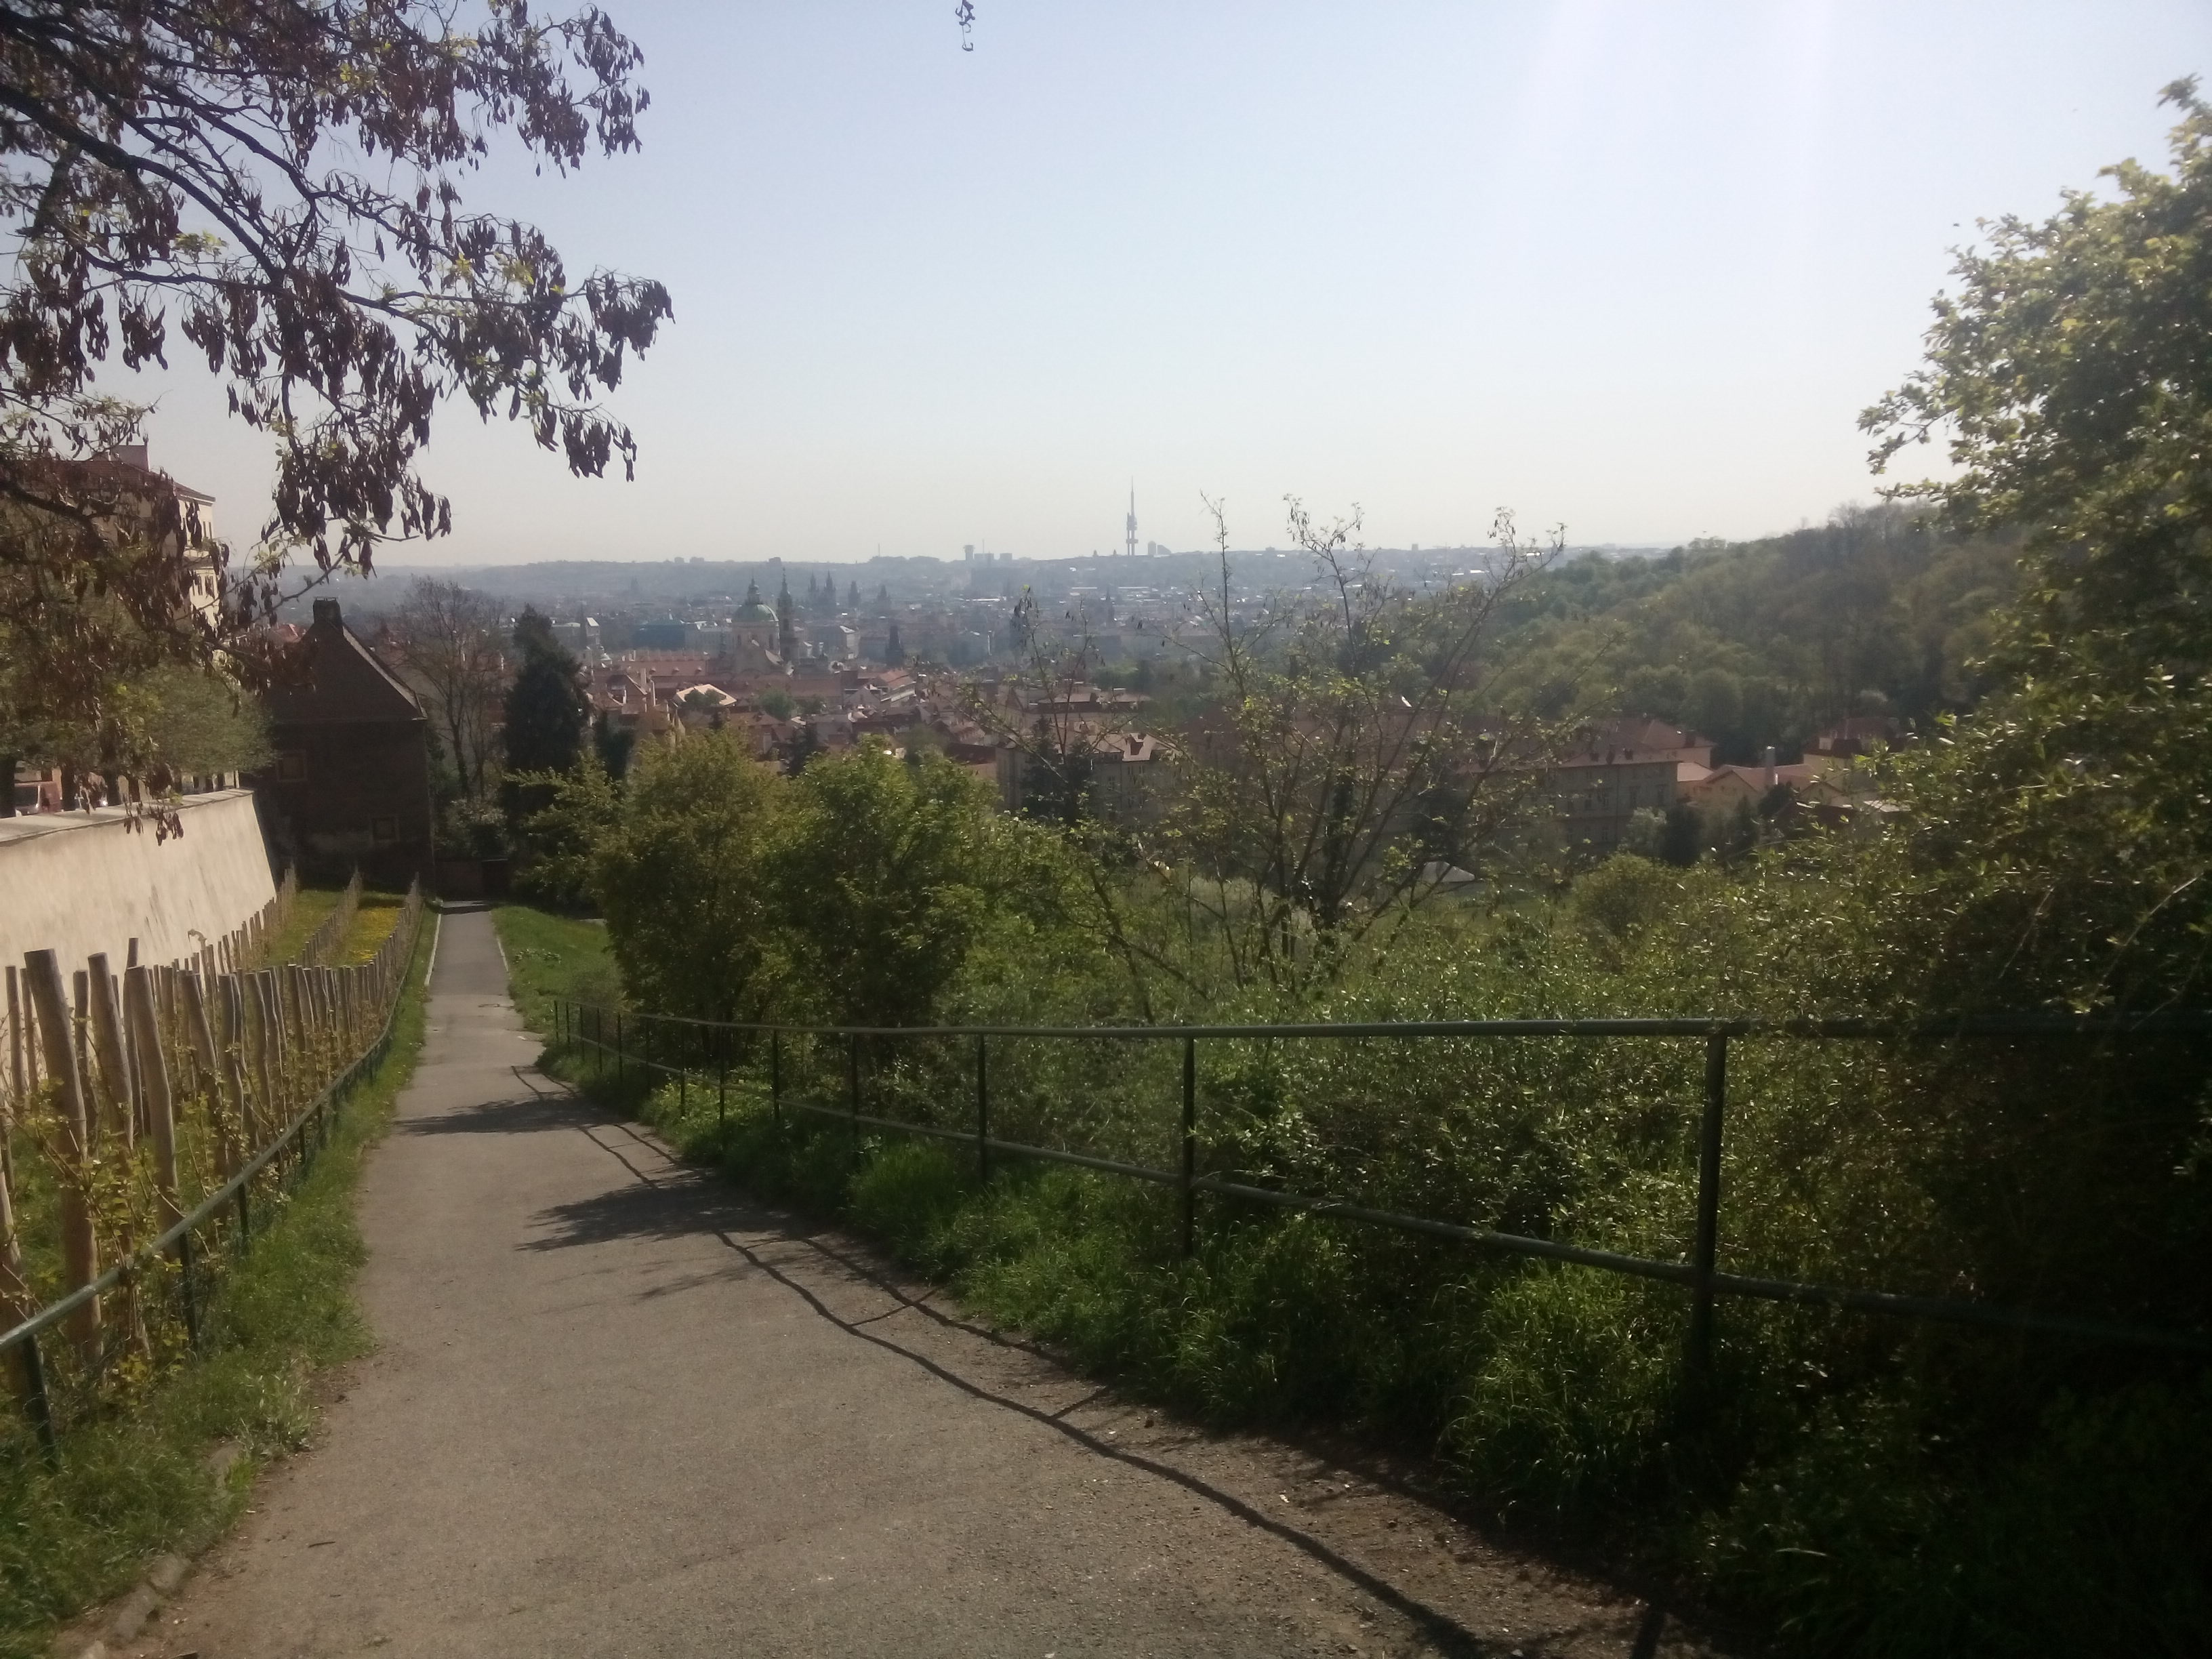 A path alongside trees leading to Prague in the distance